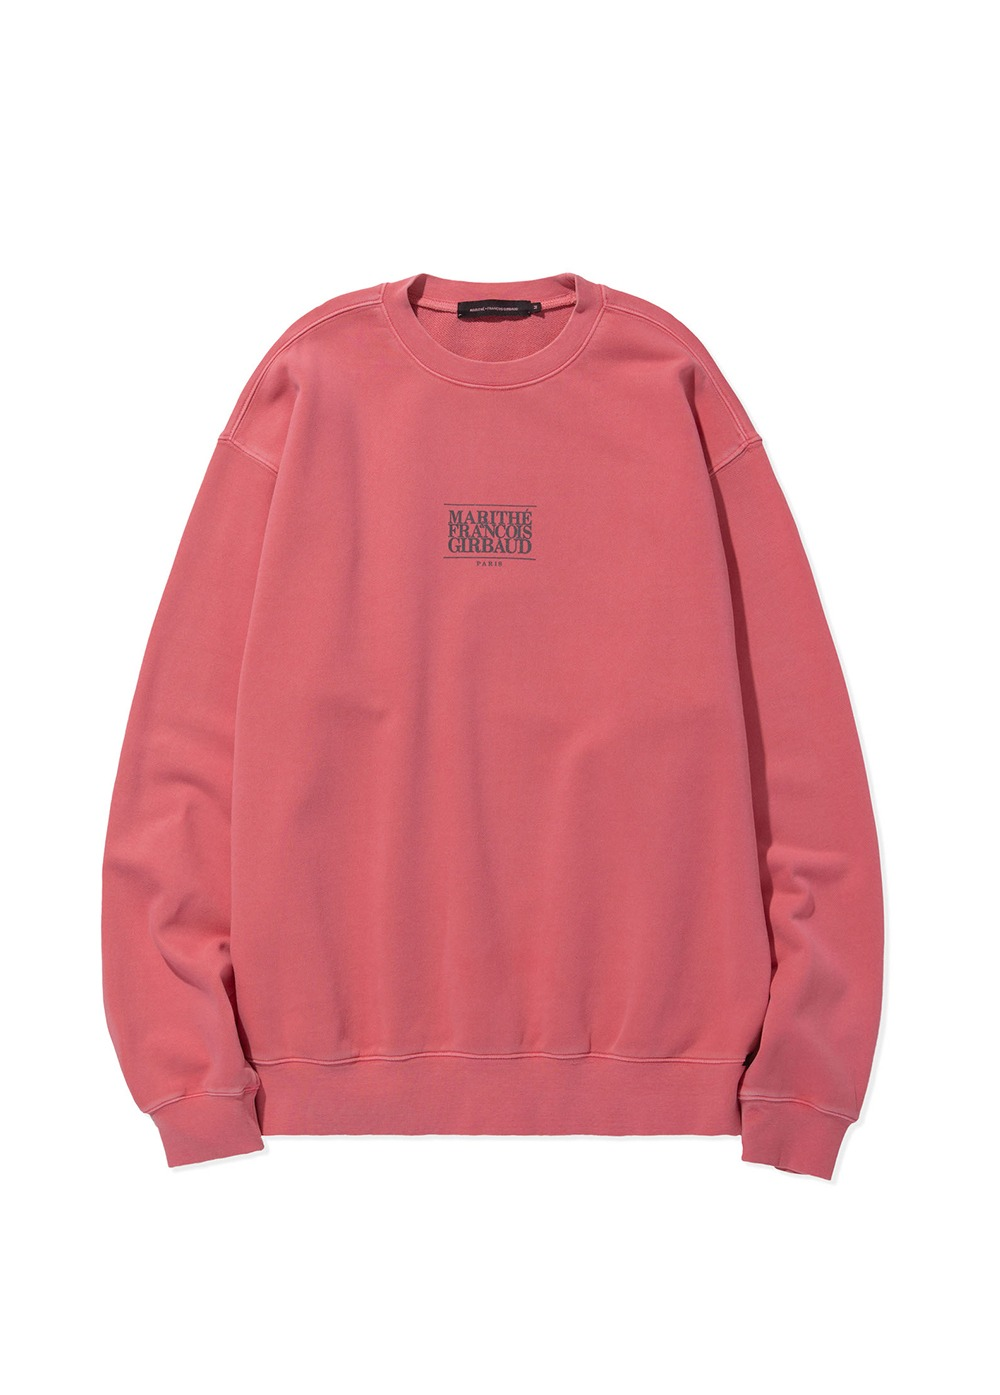 MARITHE SMALL CLASSIC LOGO SWEATSHIRT coral